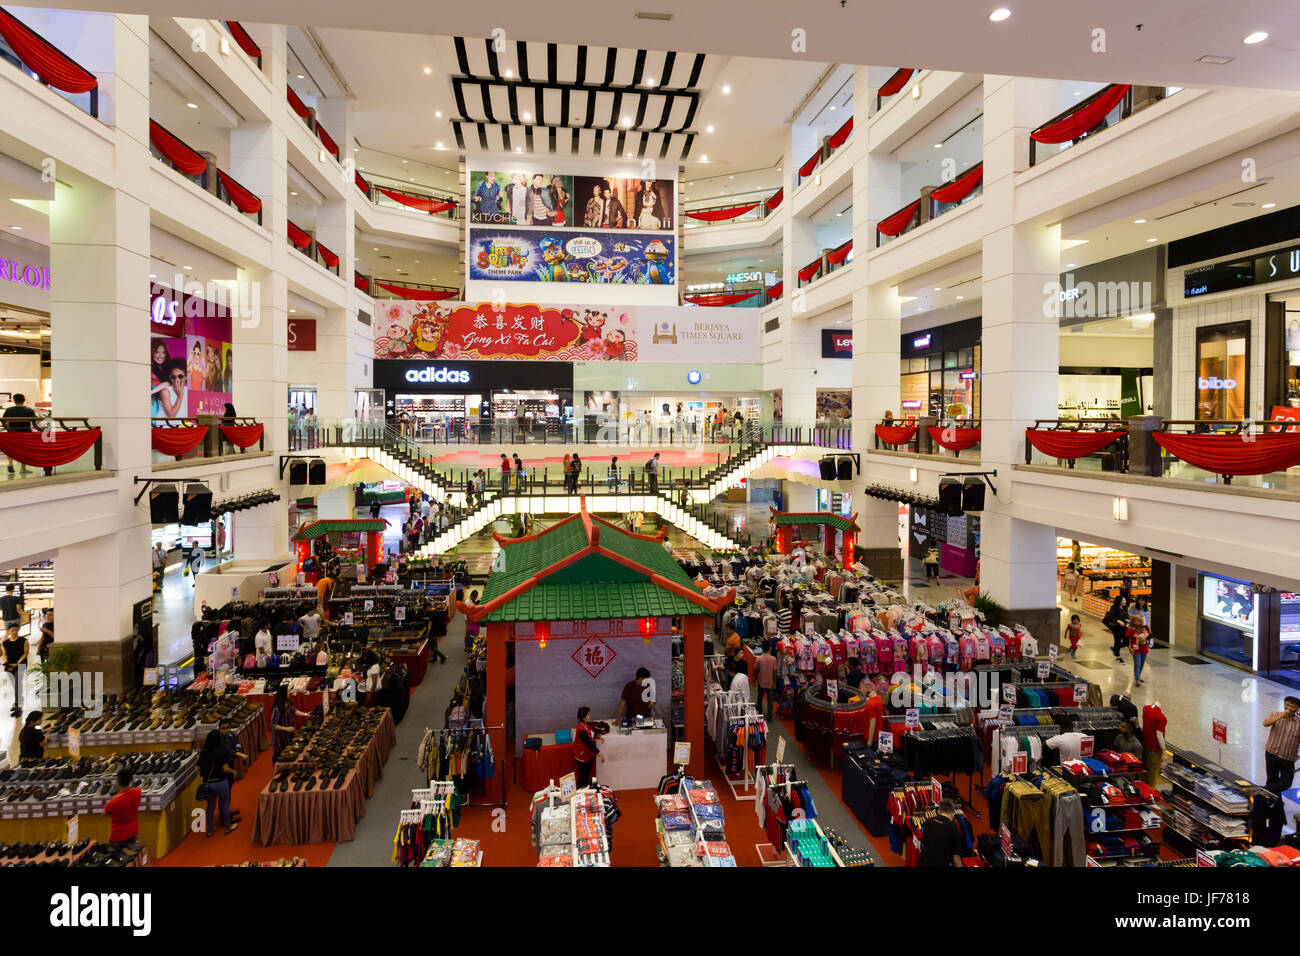 Kuala lumpur malaysia january 26 2017 interior of berjaya times kuala lumpur malaysia january 26 2017 interior of berjaya times square shopping mall berjaya times square is a 48 storey 203 m twin tower hot publicscrutiny Images